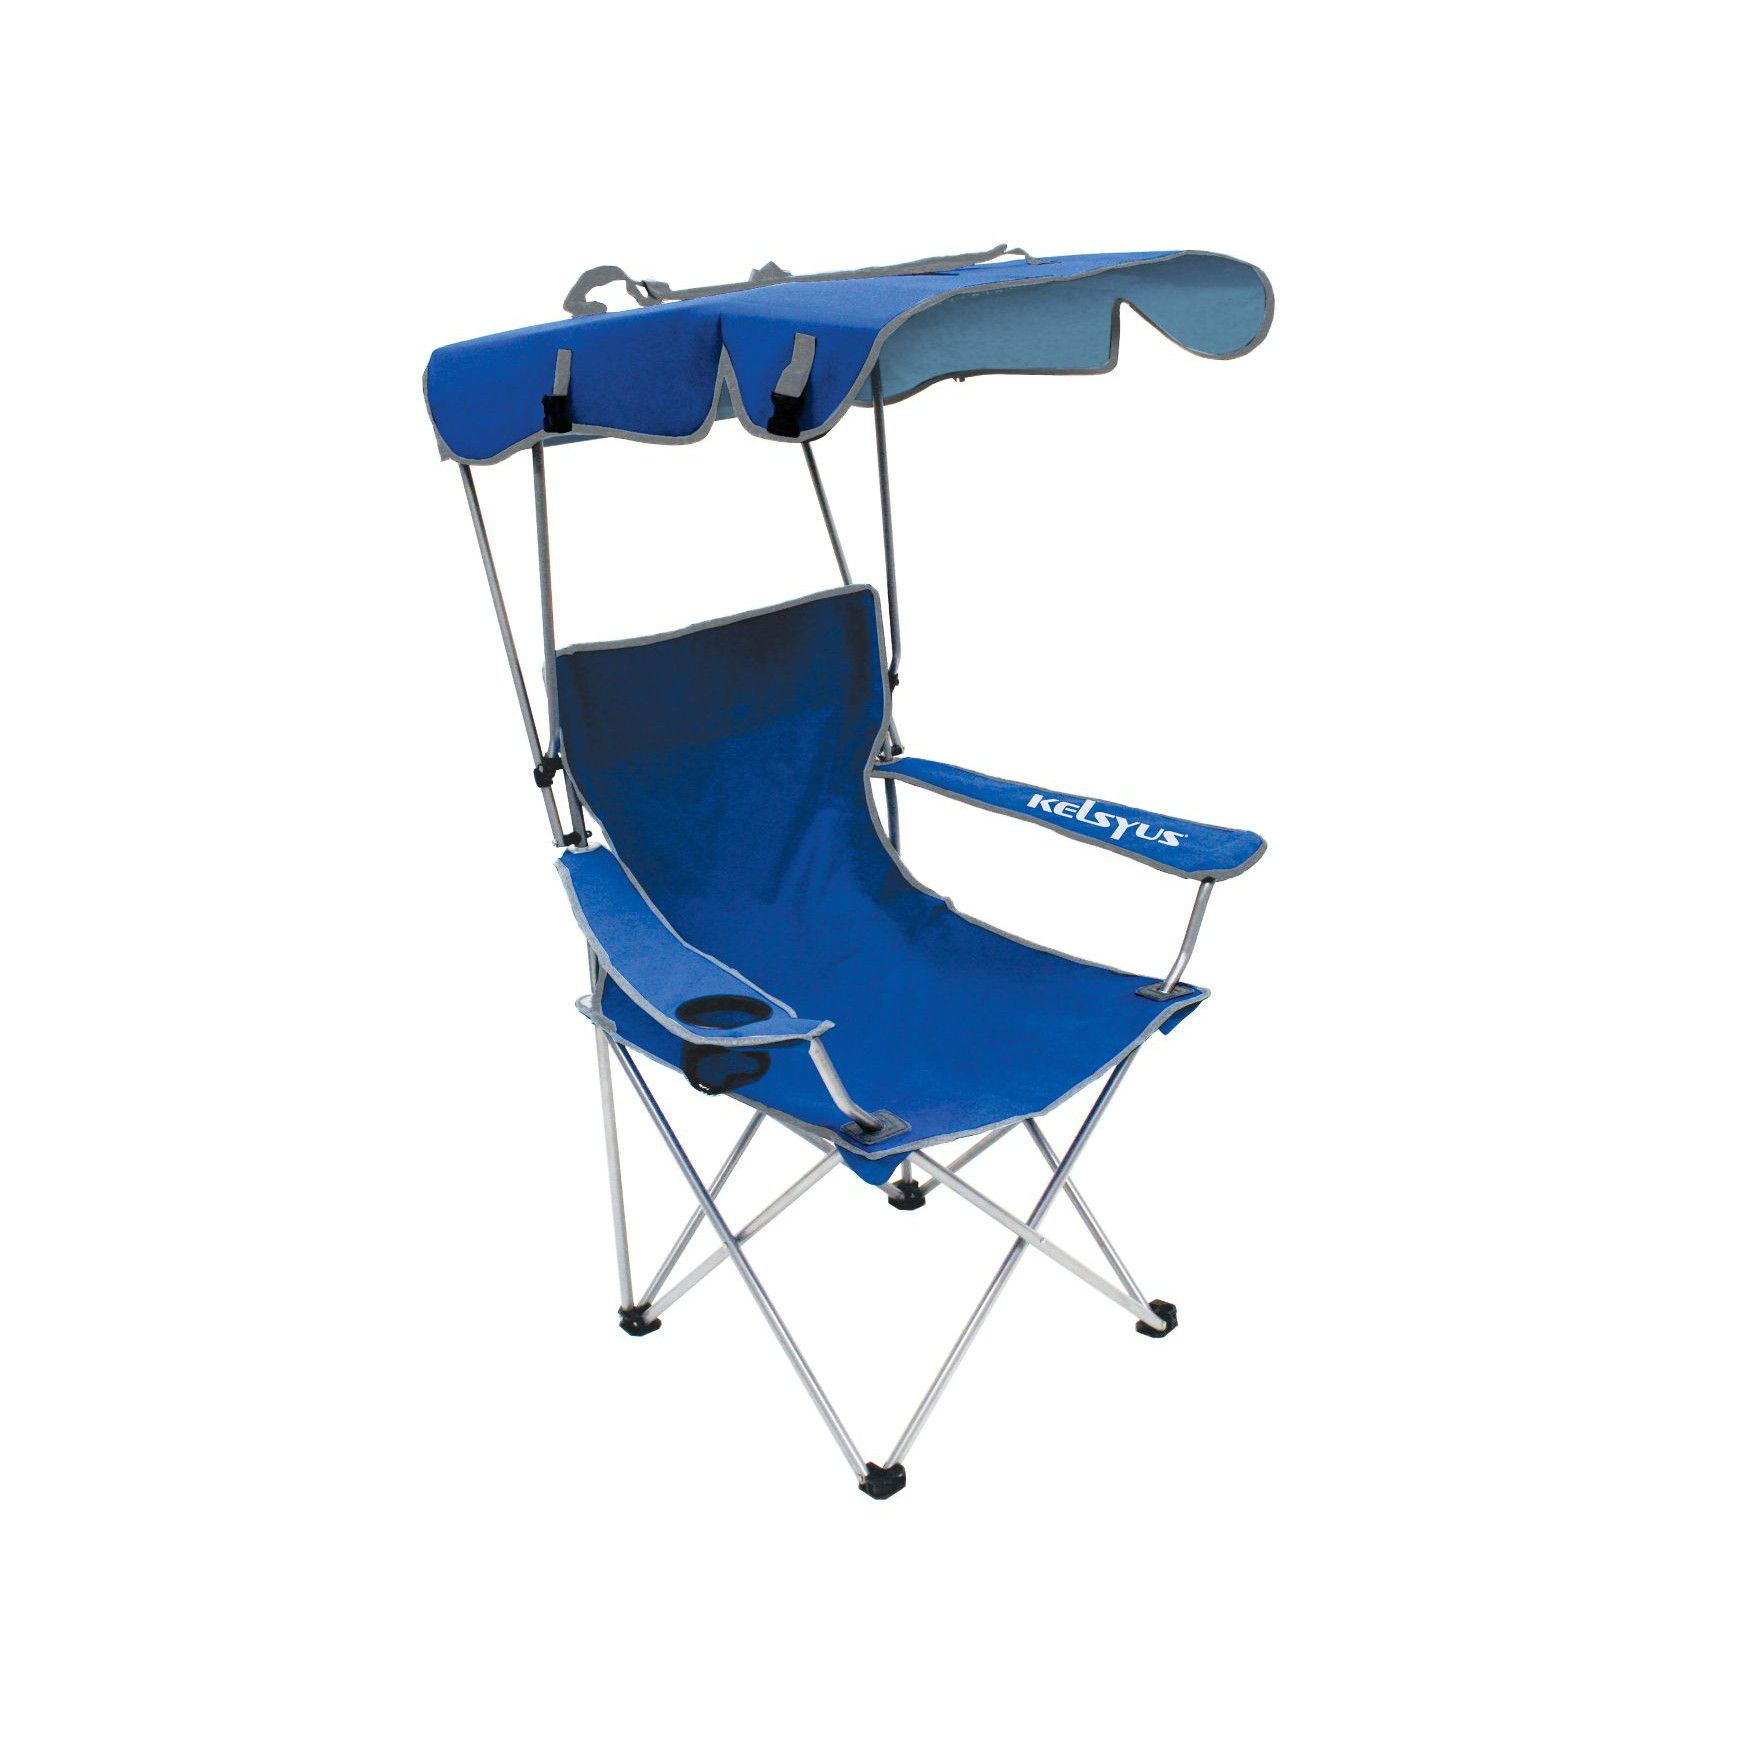 Surprising Kelsyus Convertible Canopy Chair Blue Products In 2019 Customarchery Wood Chair Design Ideas Customarcherynet